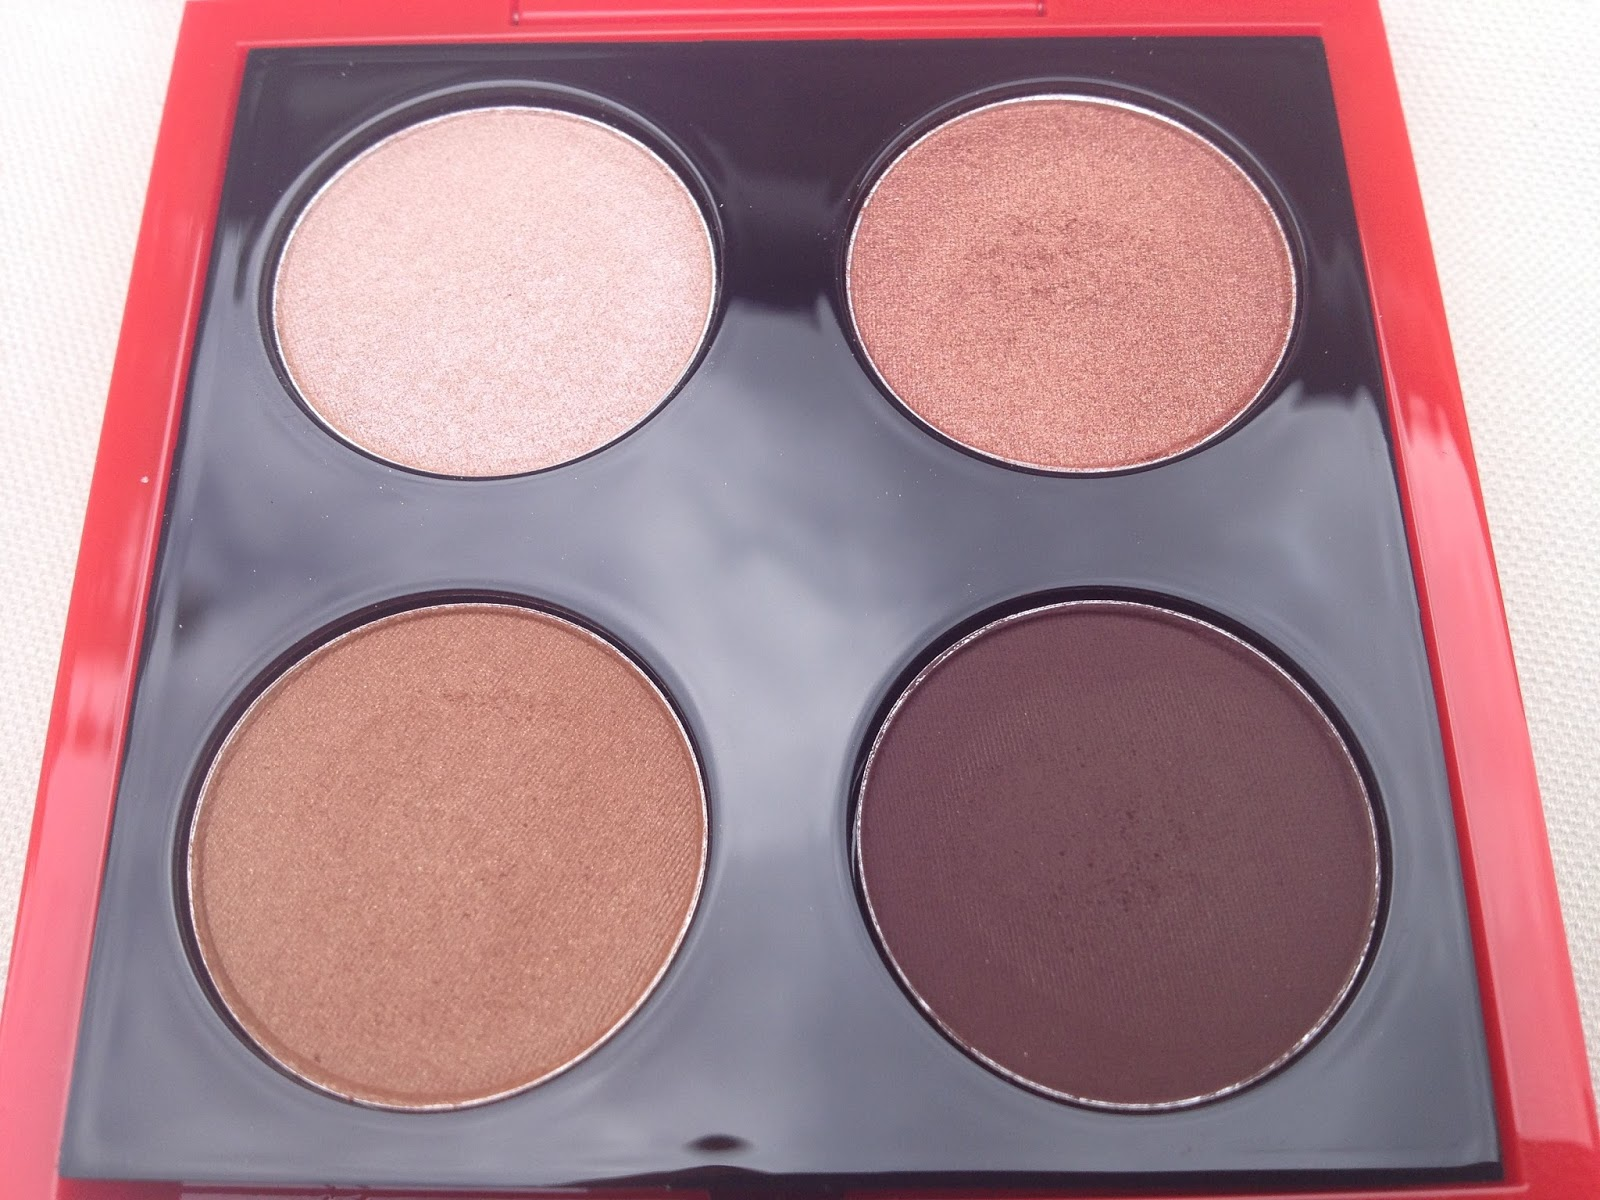 MAC Sharon Osbourne Collection Duchess Eye Shadow Quad